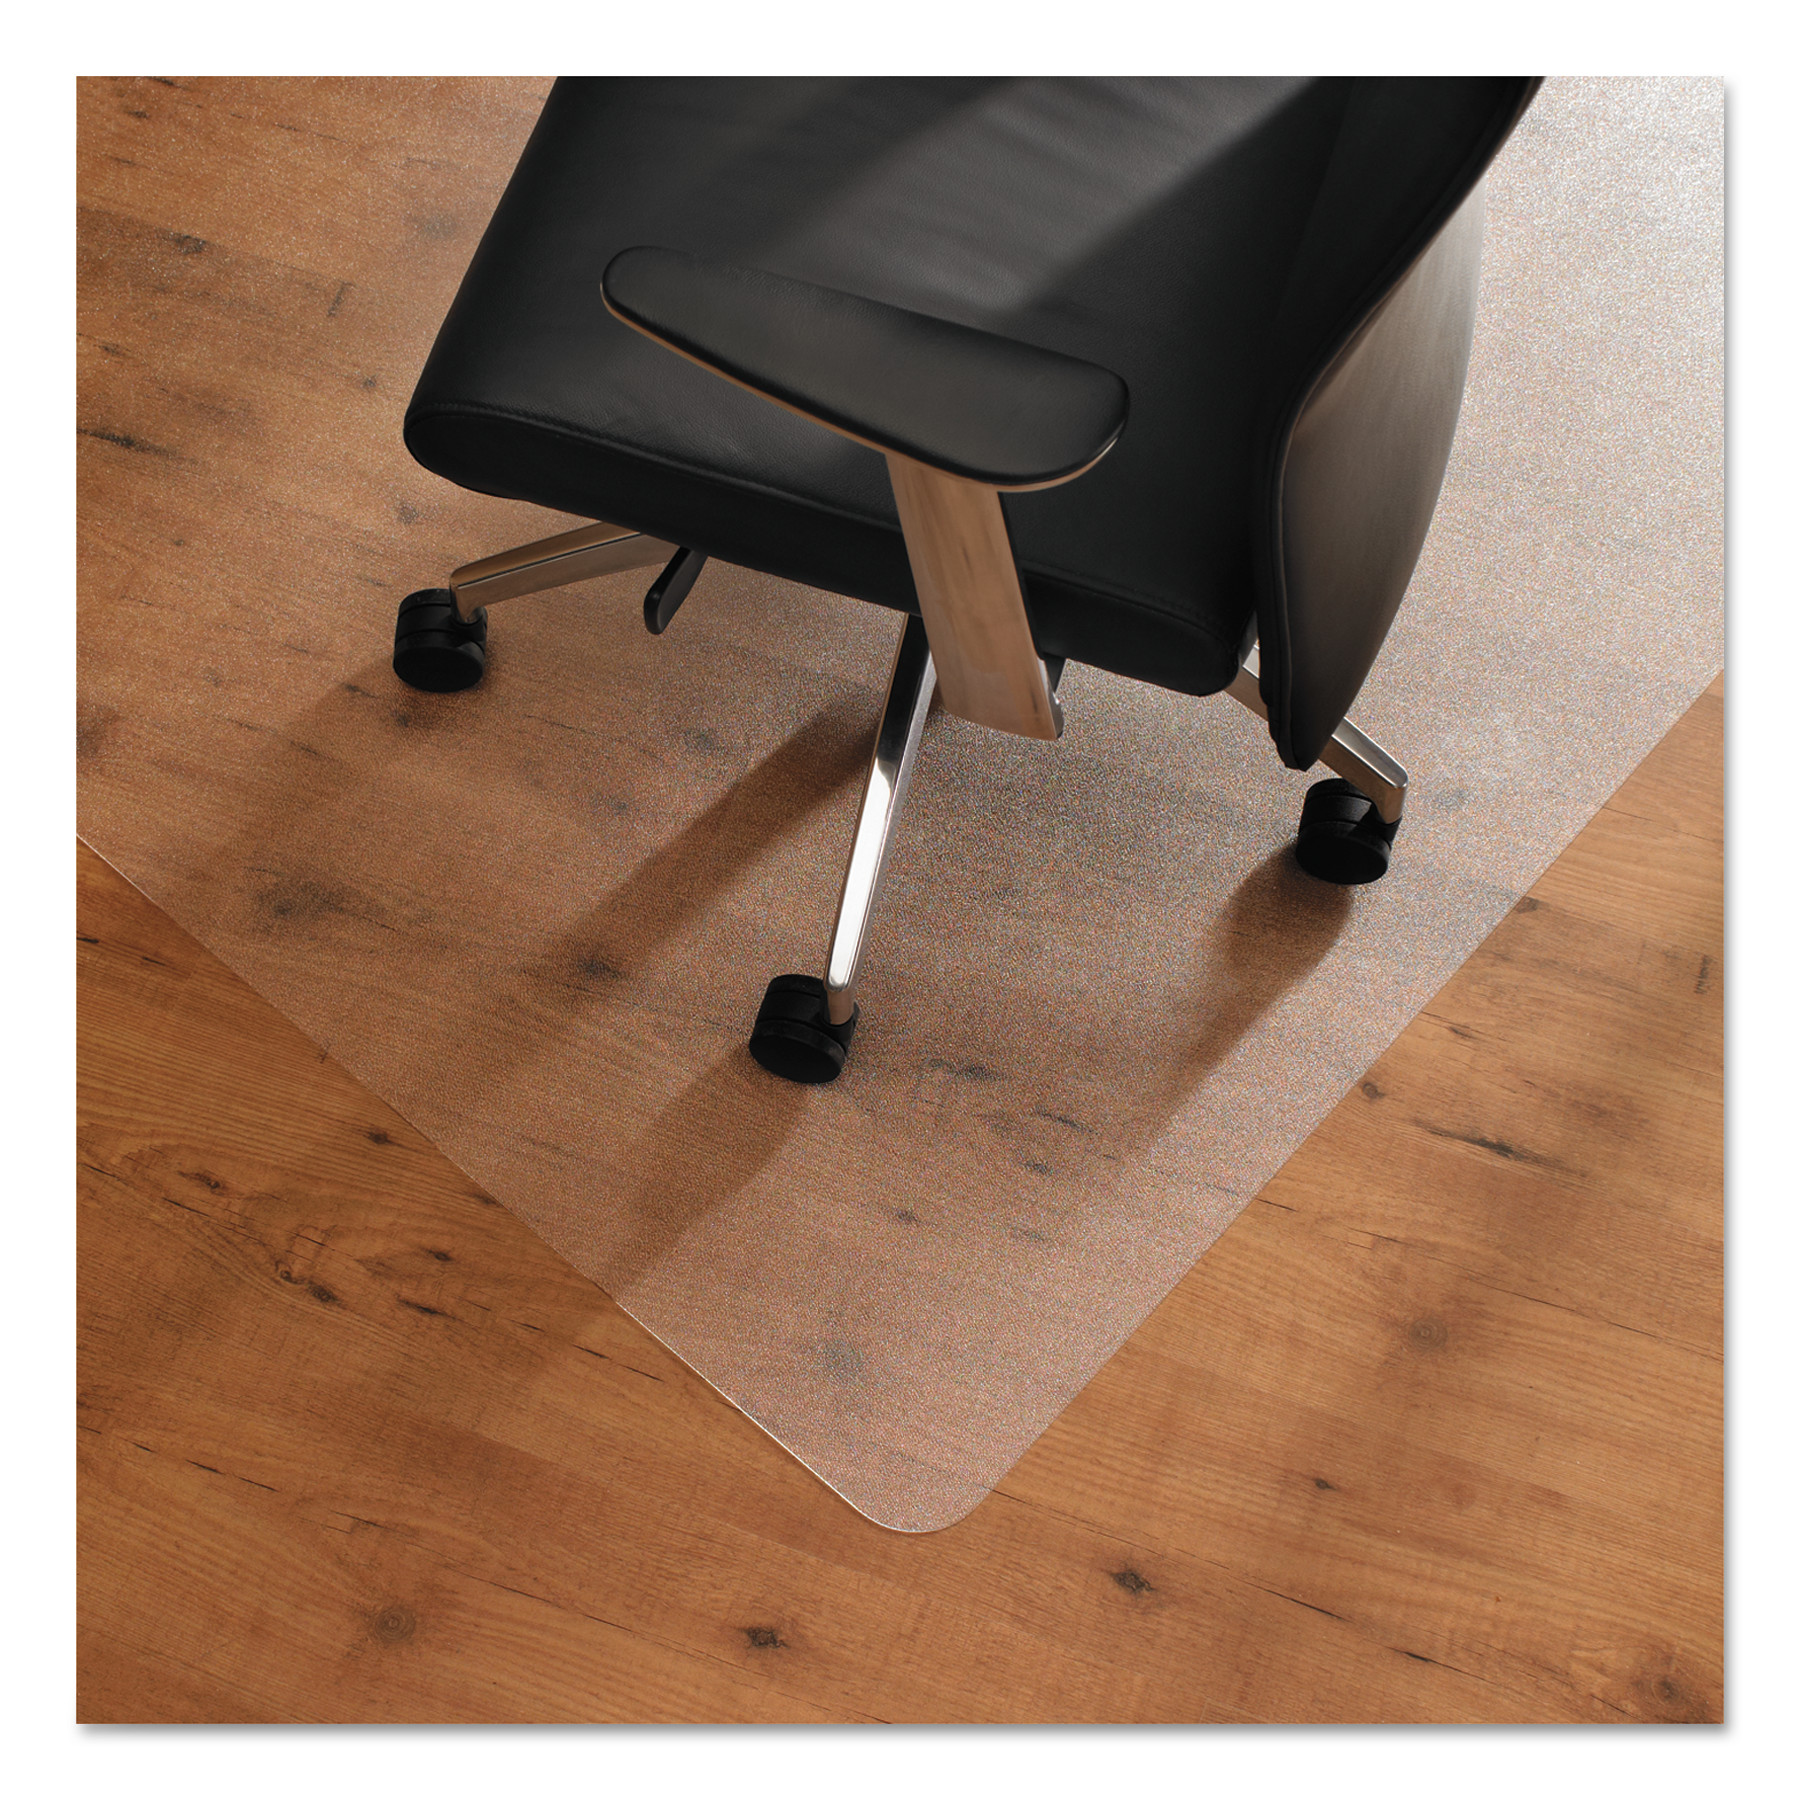 Floortex Cleartex Ultimat Anti-Slip Chair Mat for Hard Floors, 48 x 53, Clear